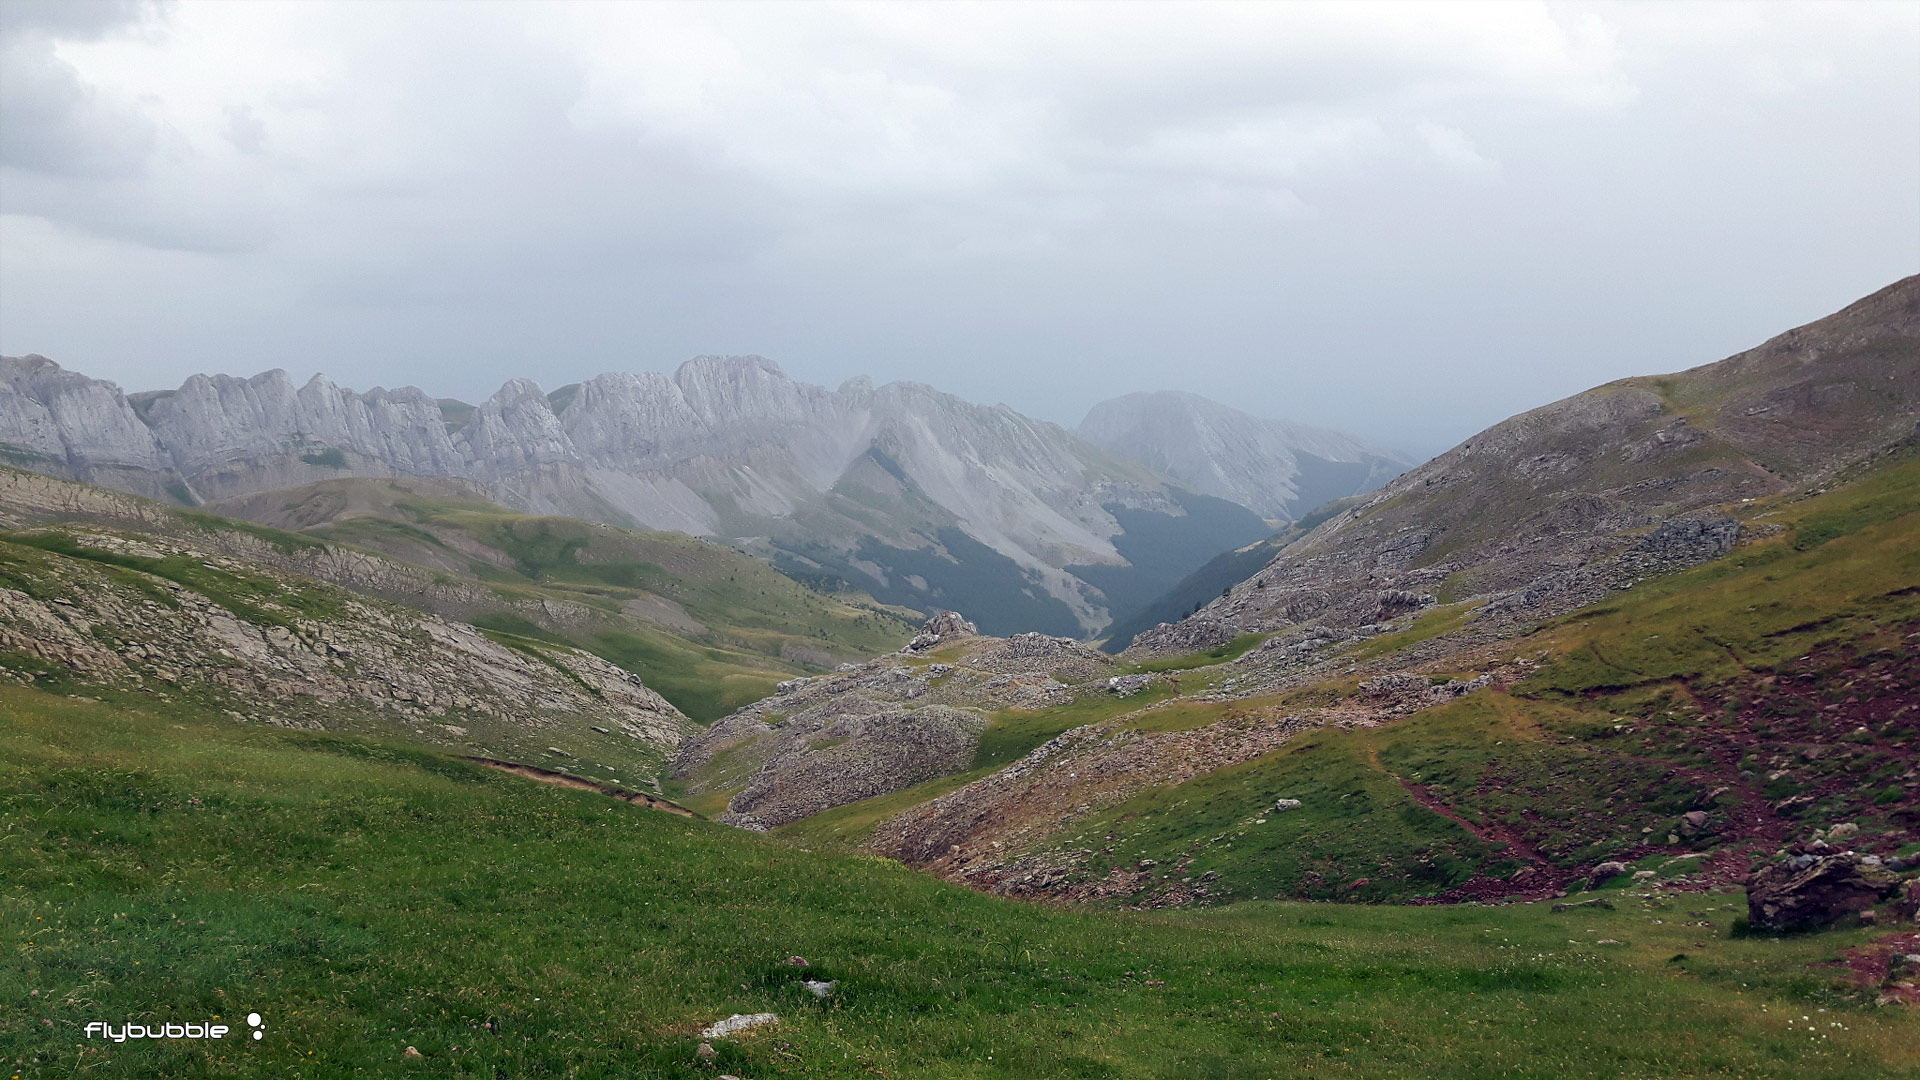 XPYR race: a hike ahead of the brooding clouds